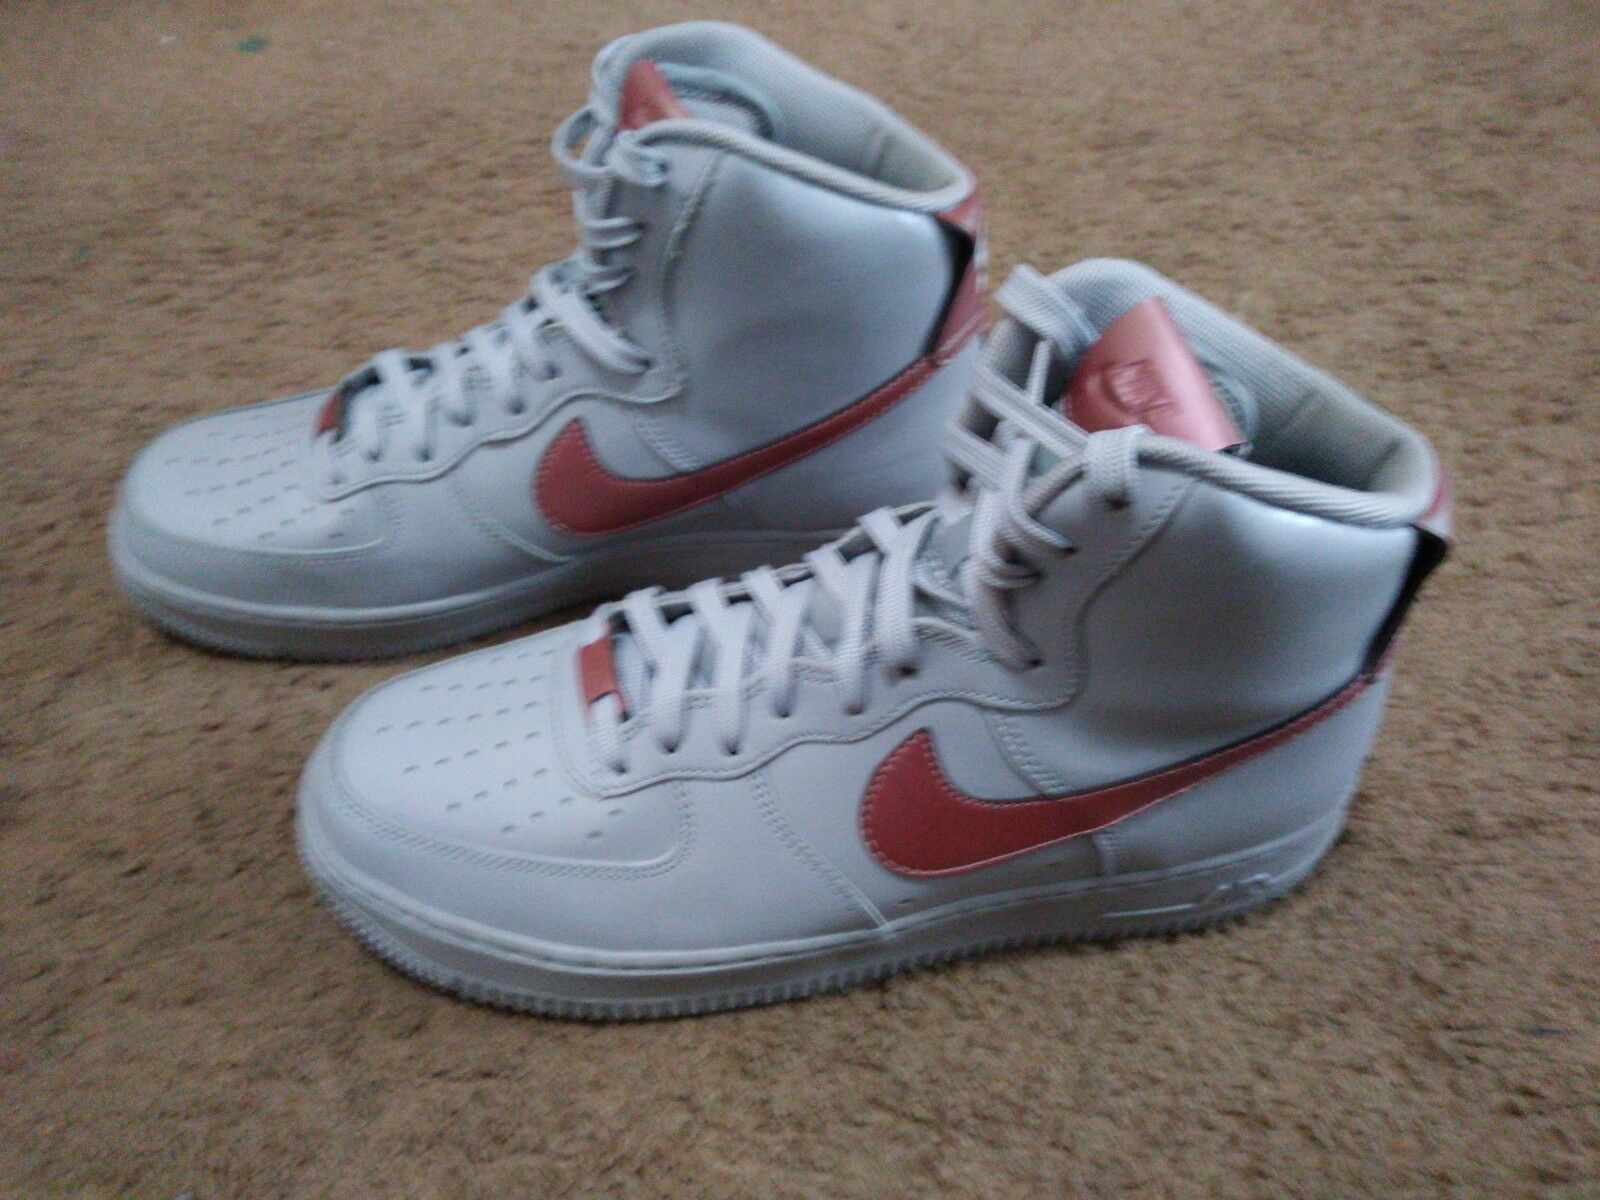 nike air force 1 high 07 pink and grey  The latest discount shoes for men and women